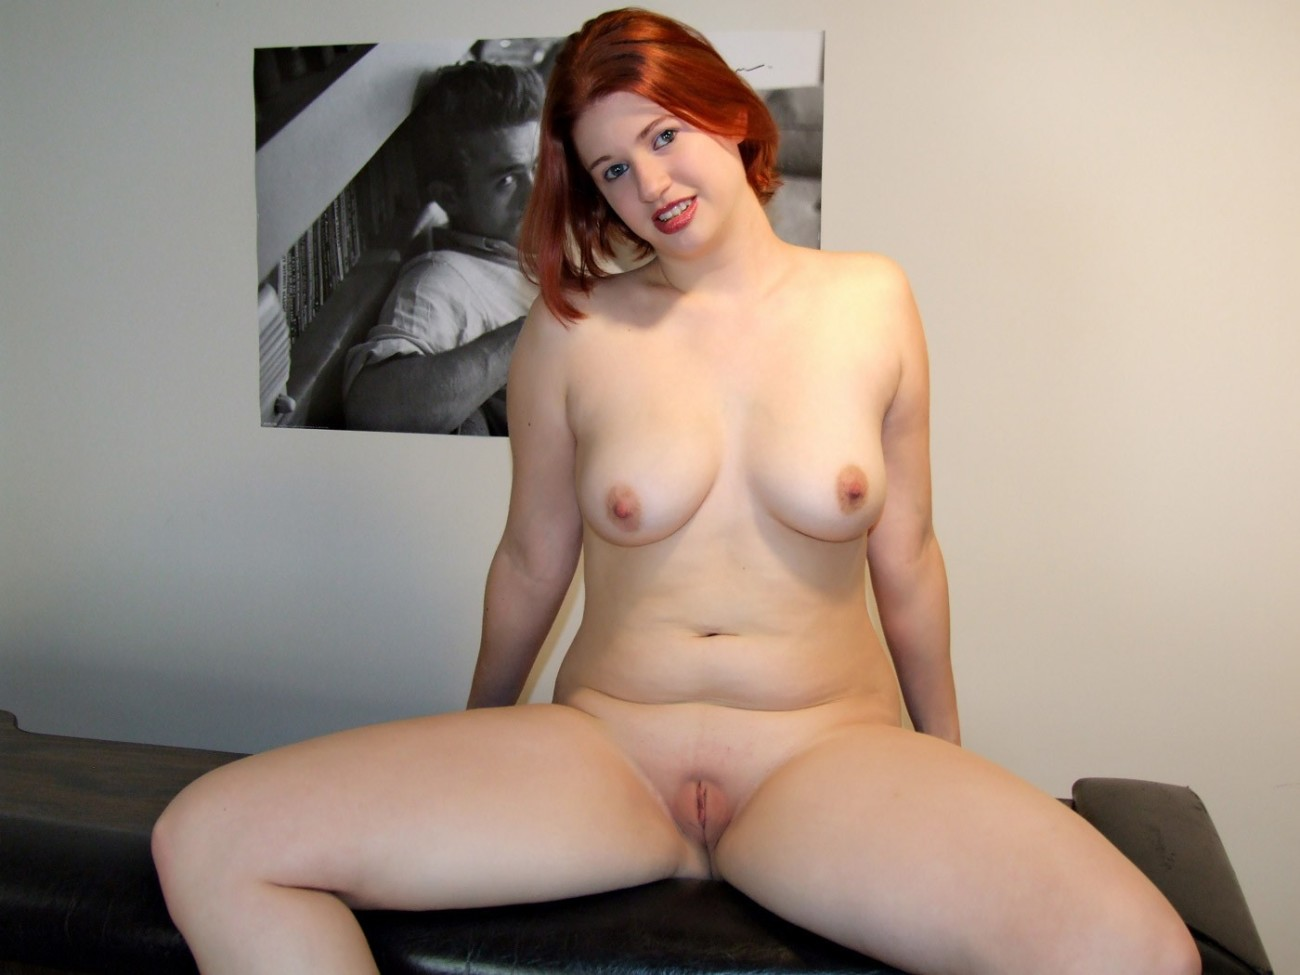 Nude Redhead Pics, Redhead Nudes, Naked Redheads